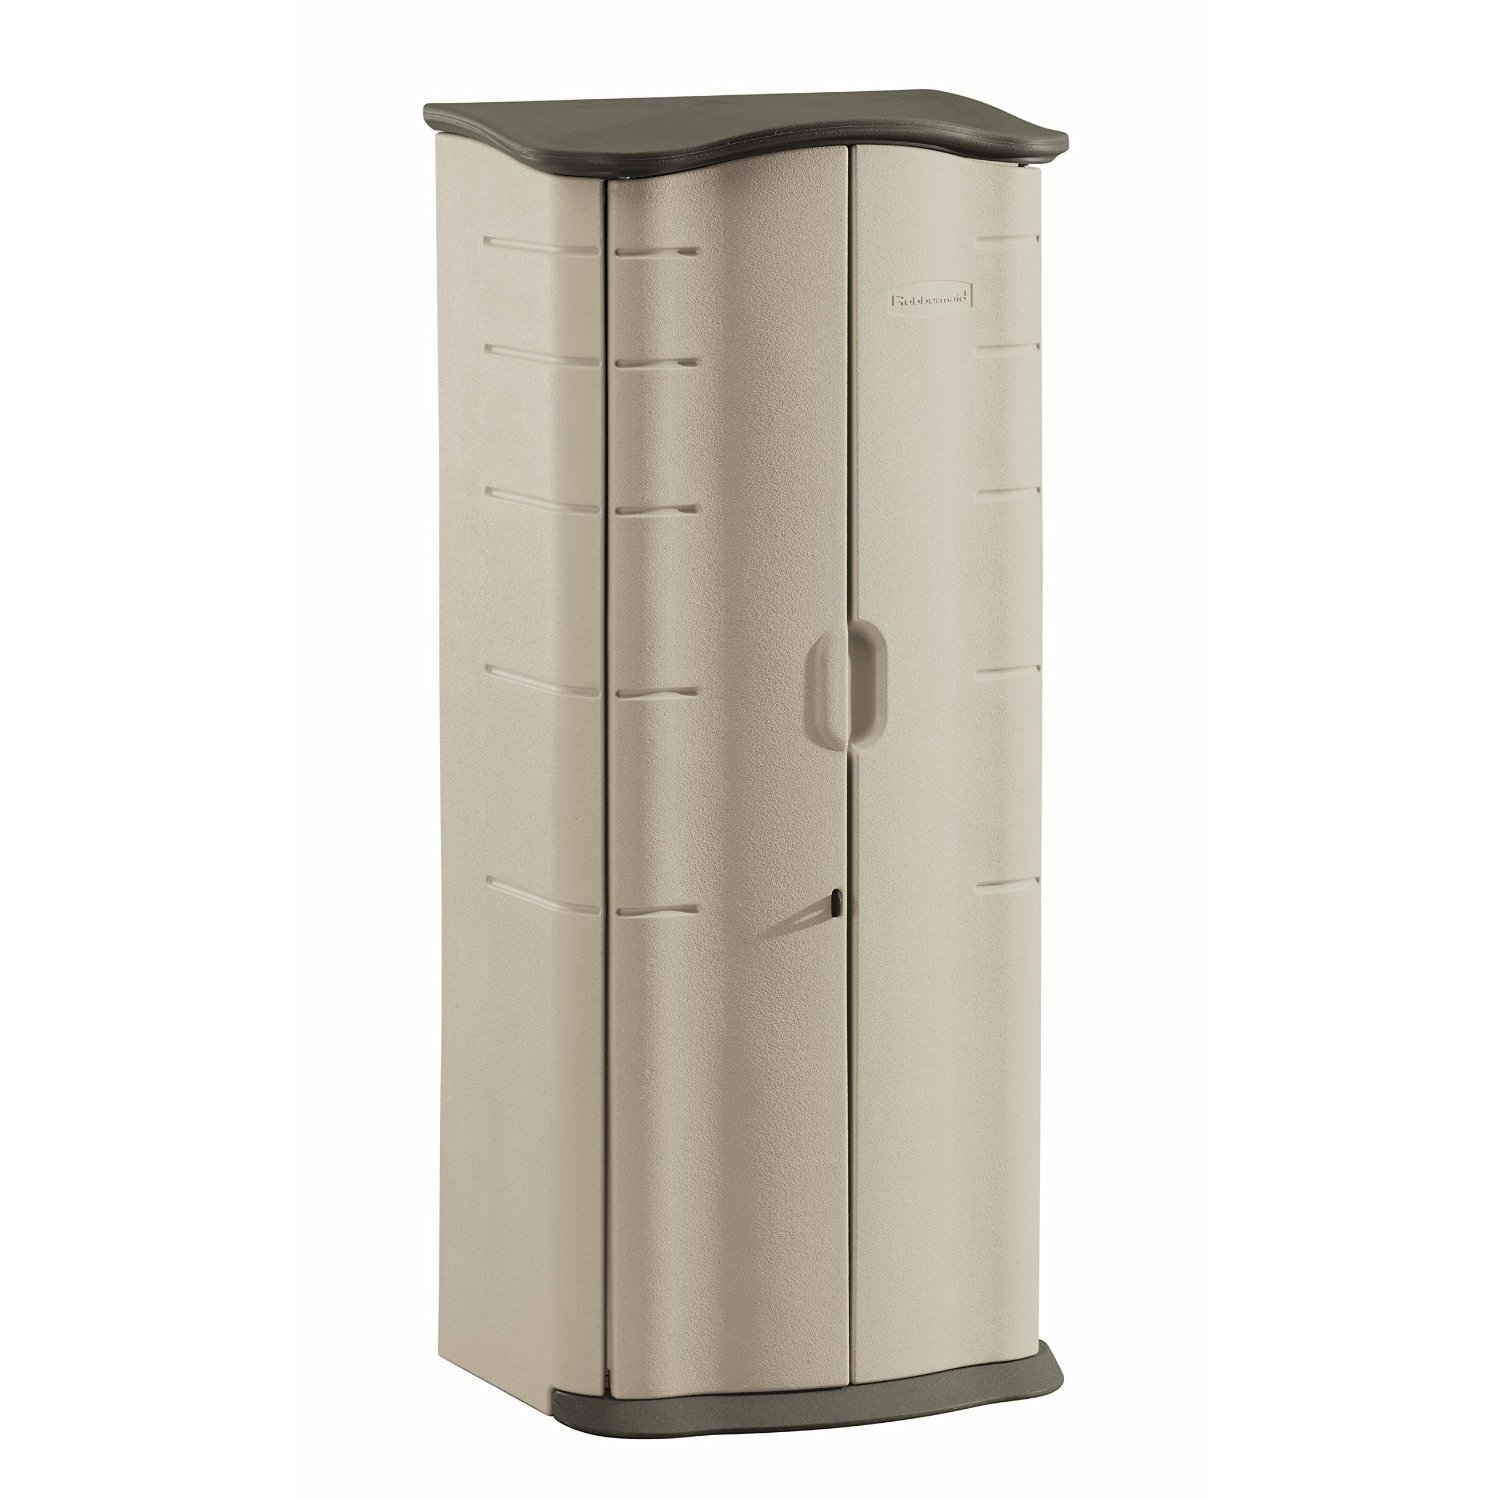 Amazon.com : Rubbermaid Outdoor Vertical Storage Shed, Plastic, 17 Cu. Ft,  2 Ft. X 2 Ft, Olive/Sandstone (FG374901OLVSS) : Storage Cabinet : Garden U0026  ...